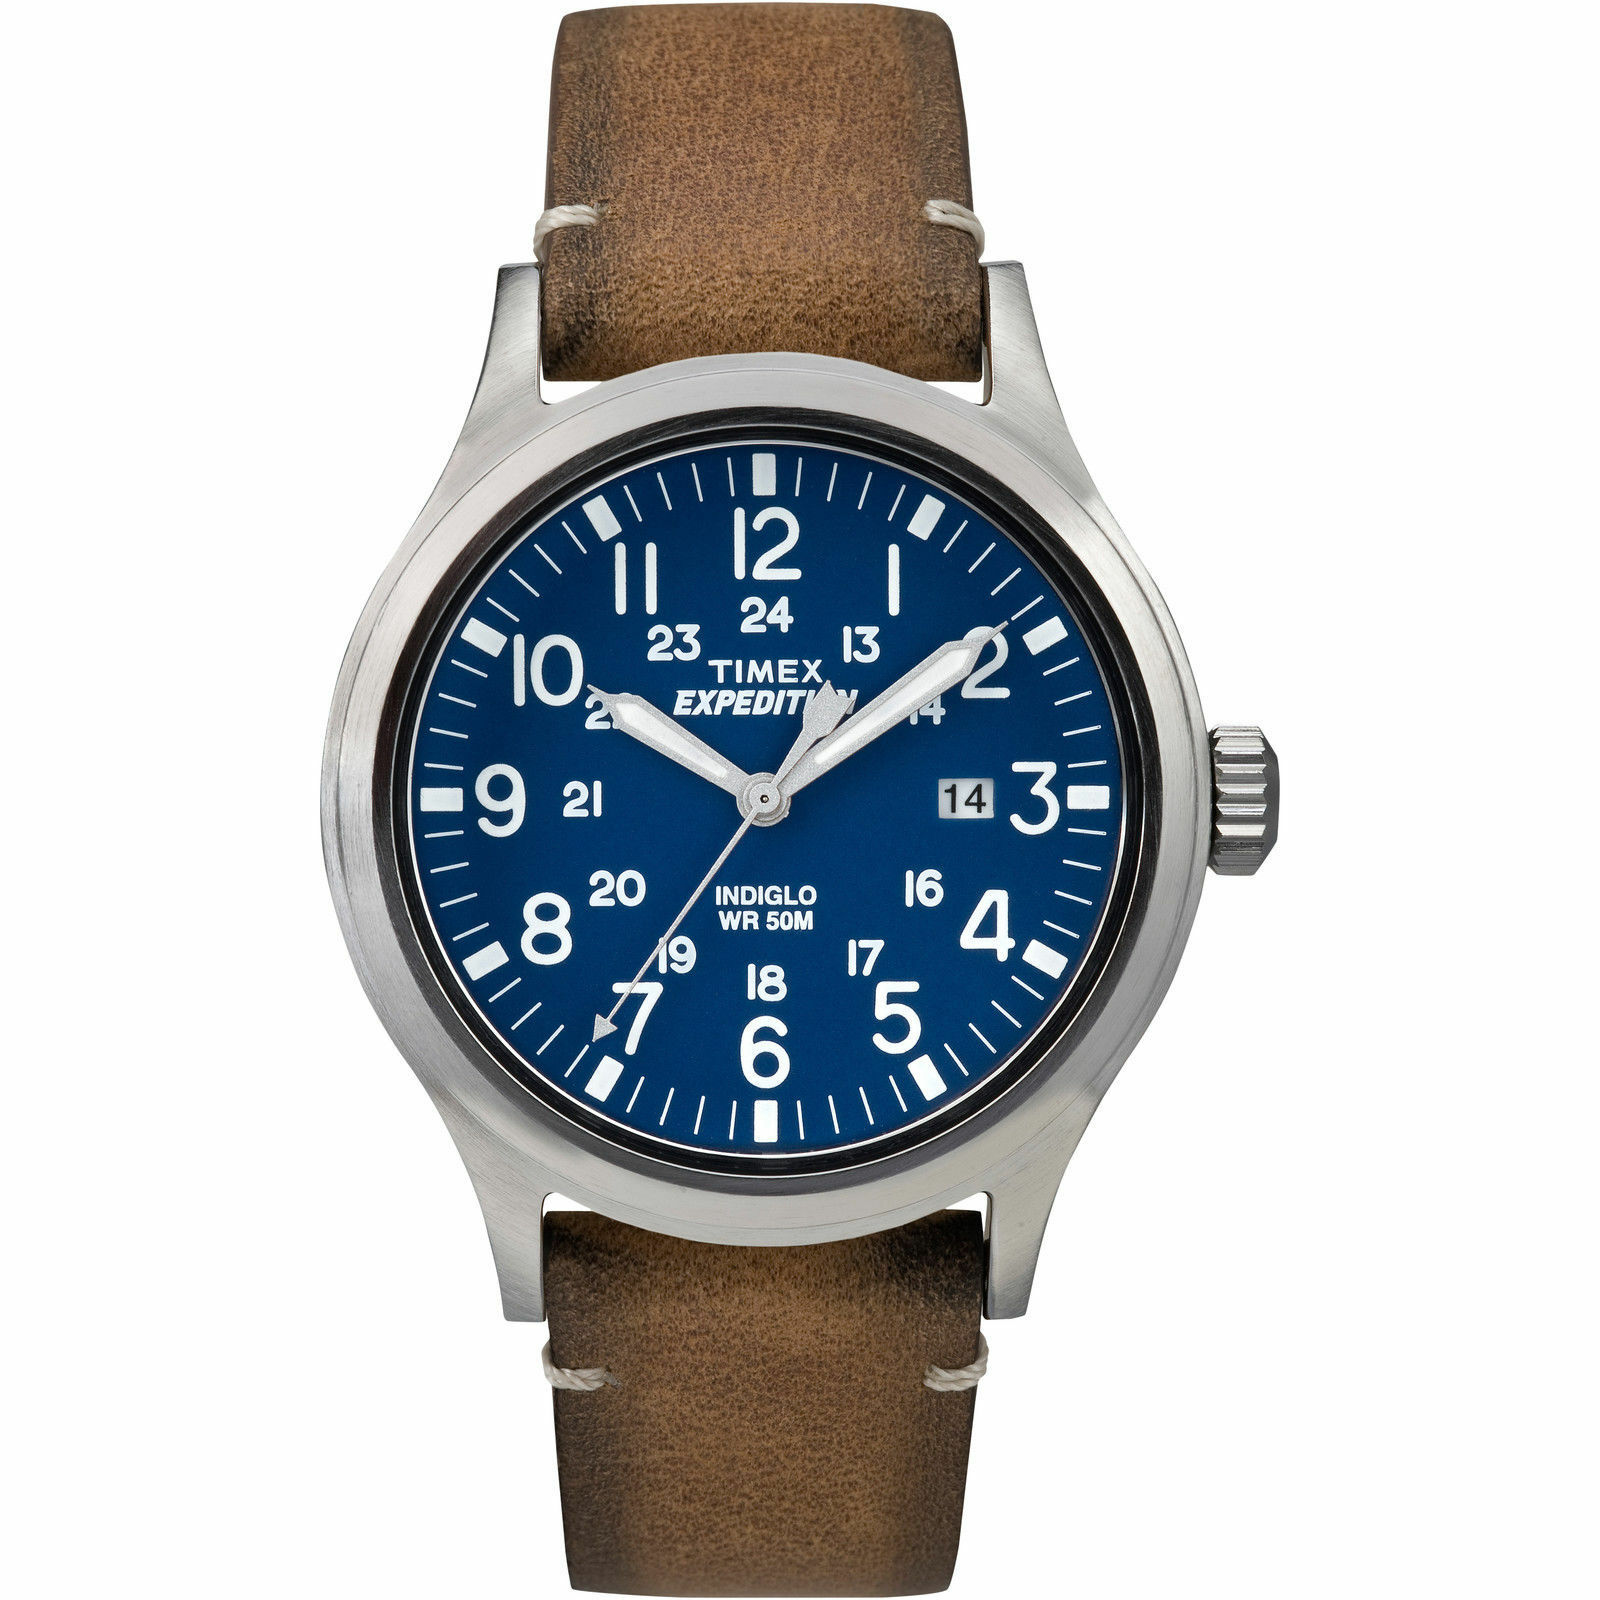 Timex TW4B01800, Men\s \Expedition\ Brown Leather Watch, Scout, TW4B018009J